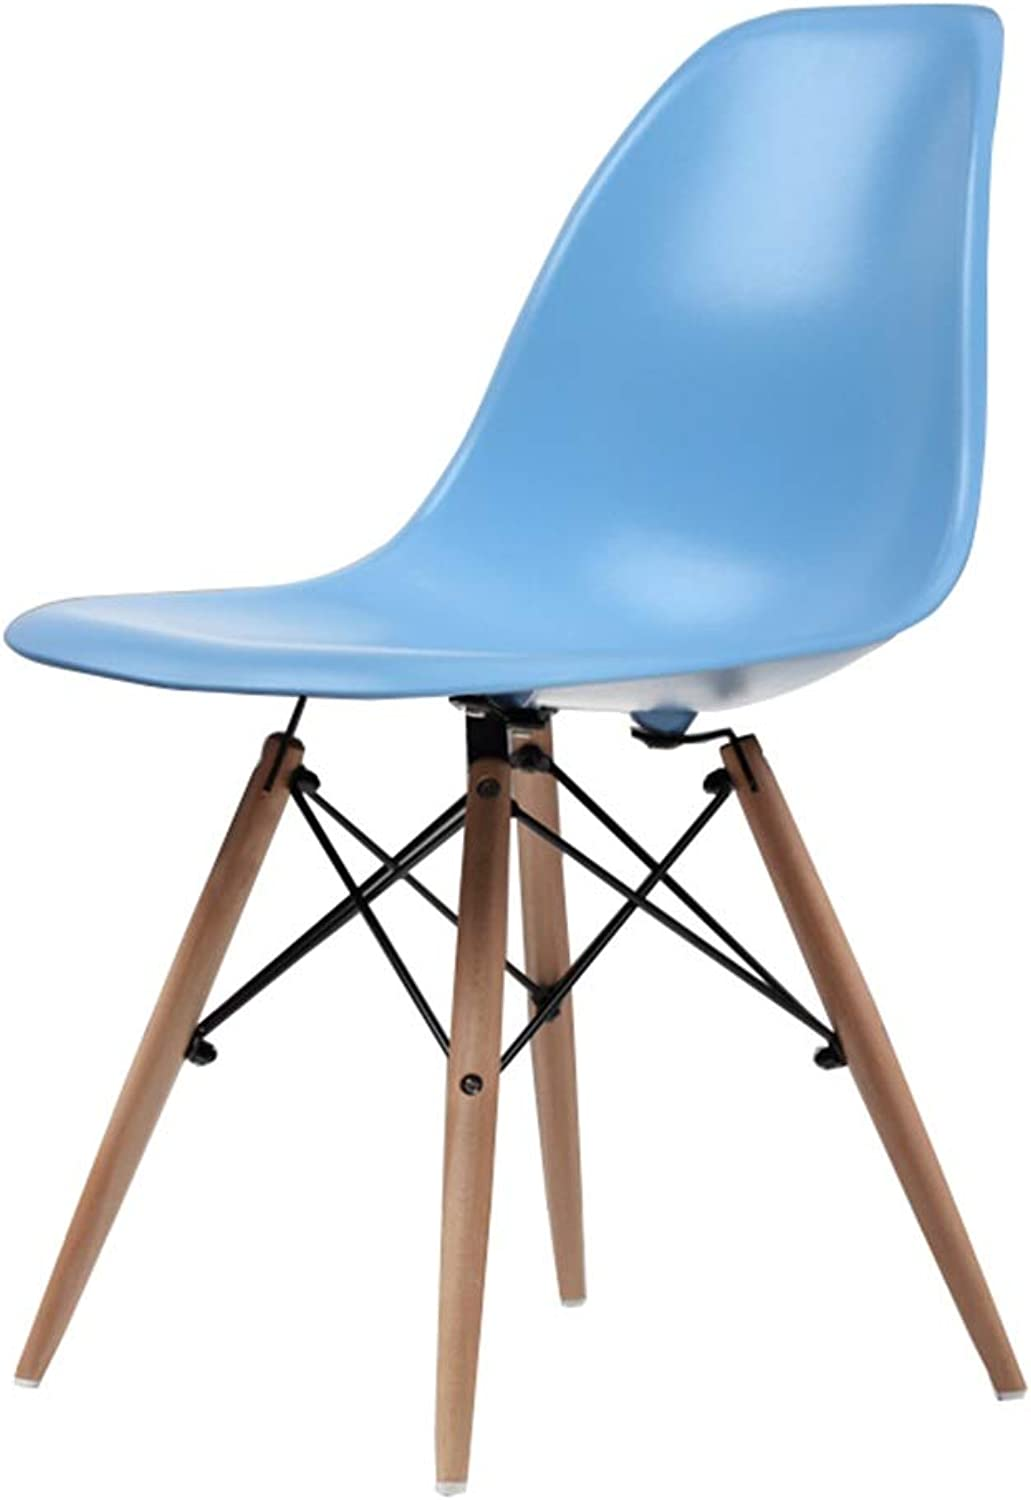 Wooden Chair Creative Office Stools Kitchen Dining Table Meeting Room Backrest Business Computer Chair Barstools,45x45x82cm,bluee